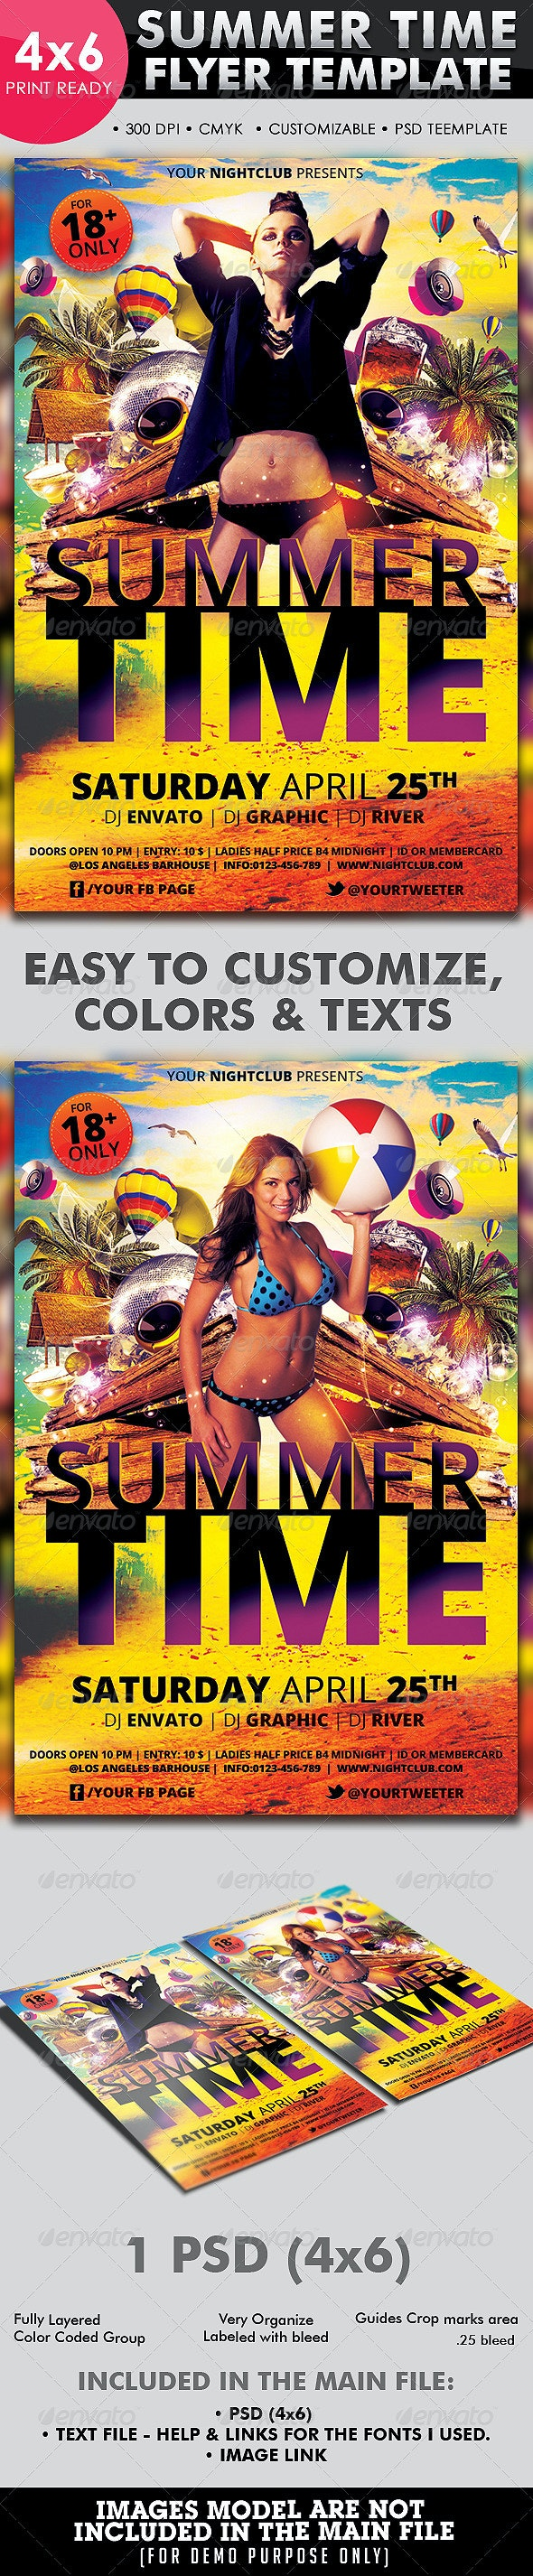 Summer Time Flyer Template - Flyers Print Templates